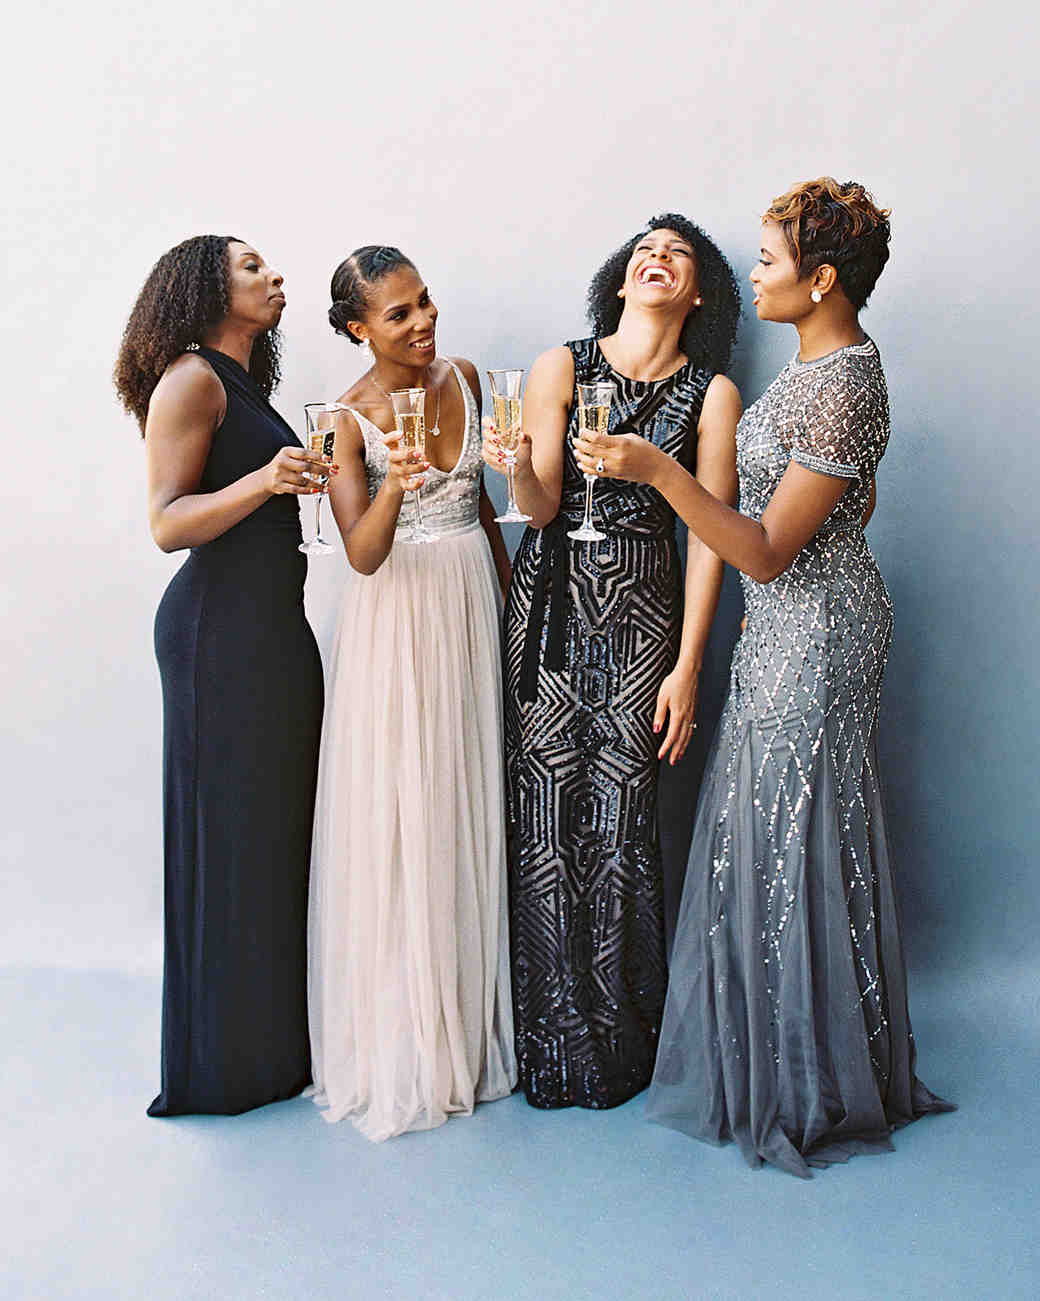 fe87d2bfda 38 Looks That Prove Bridesmaids  Dresses Can Be Chic